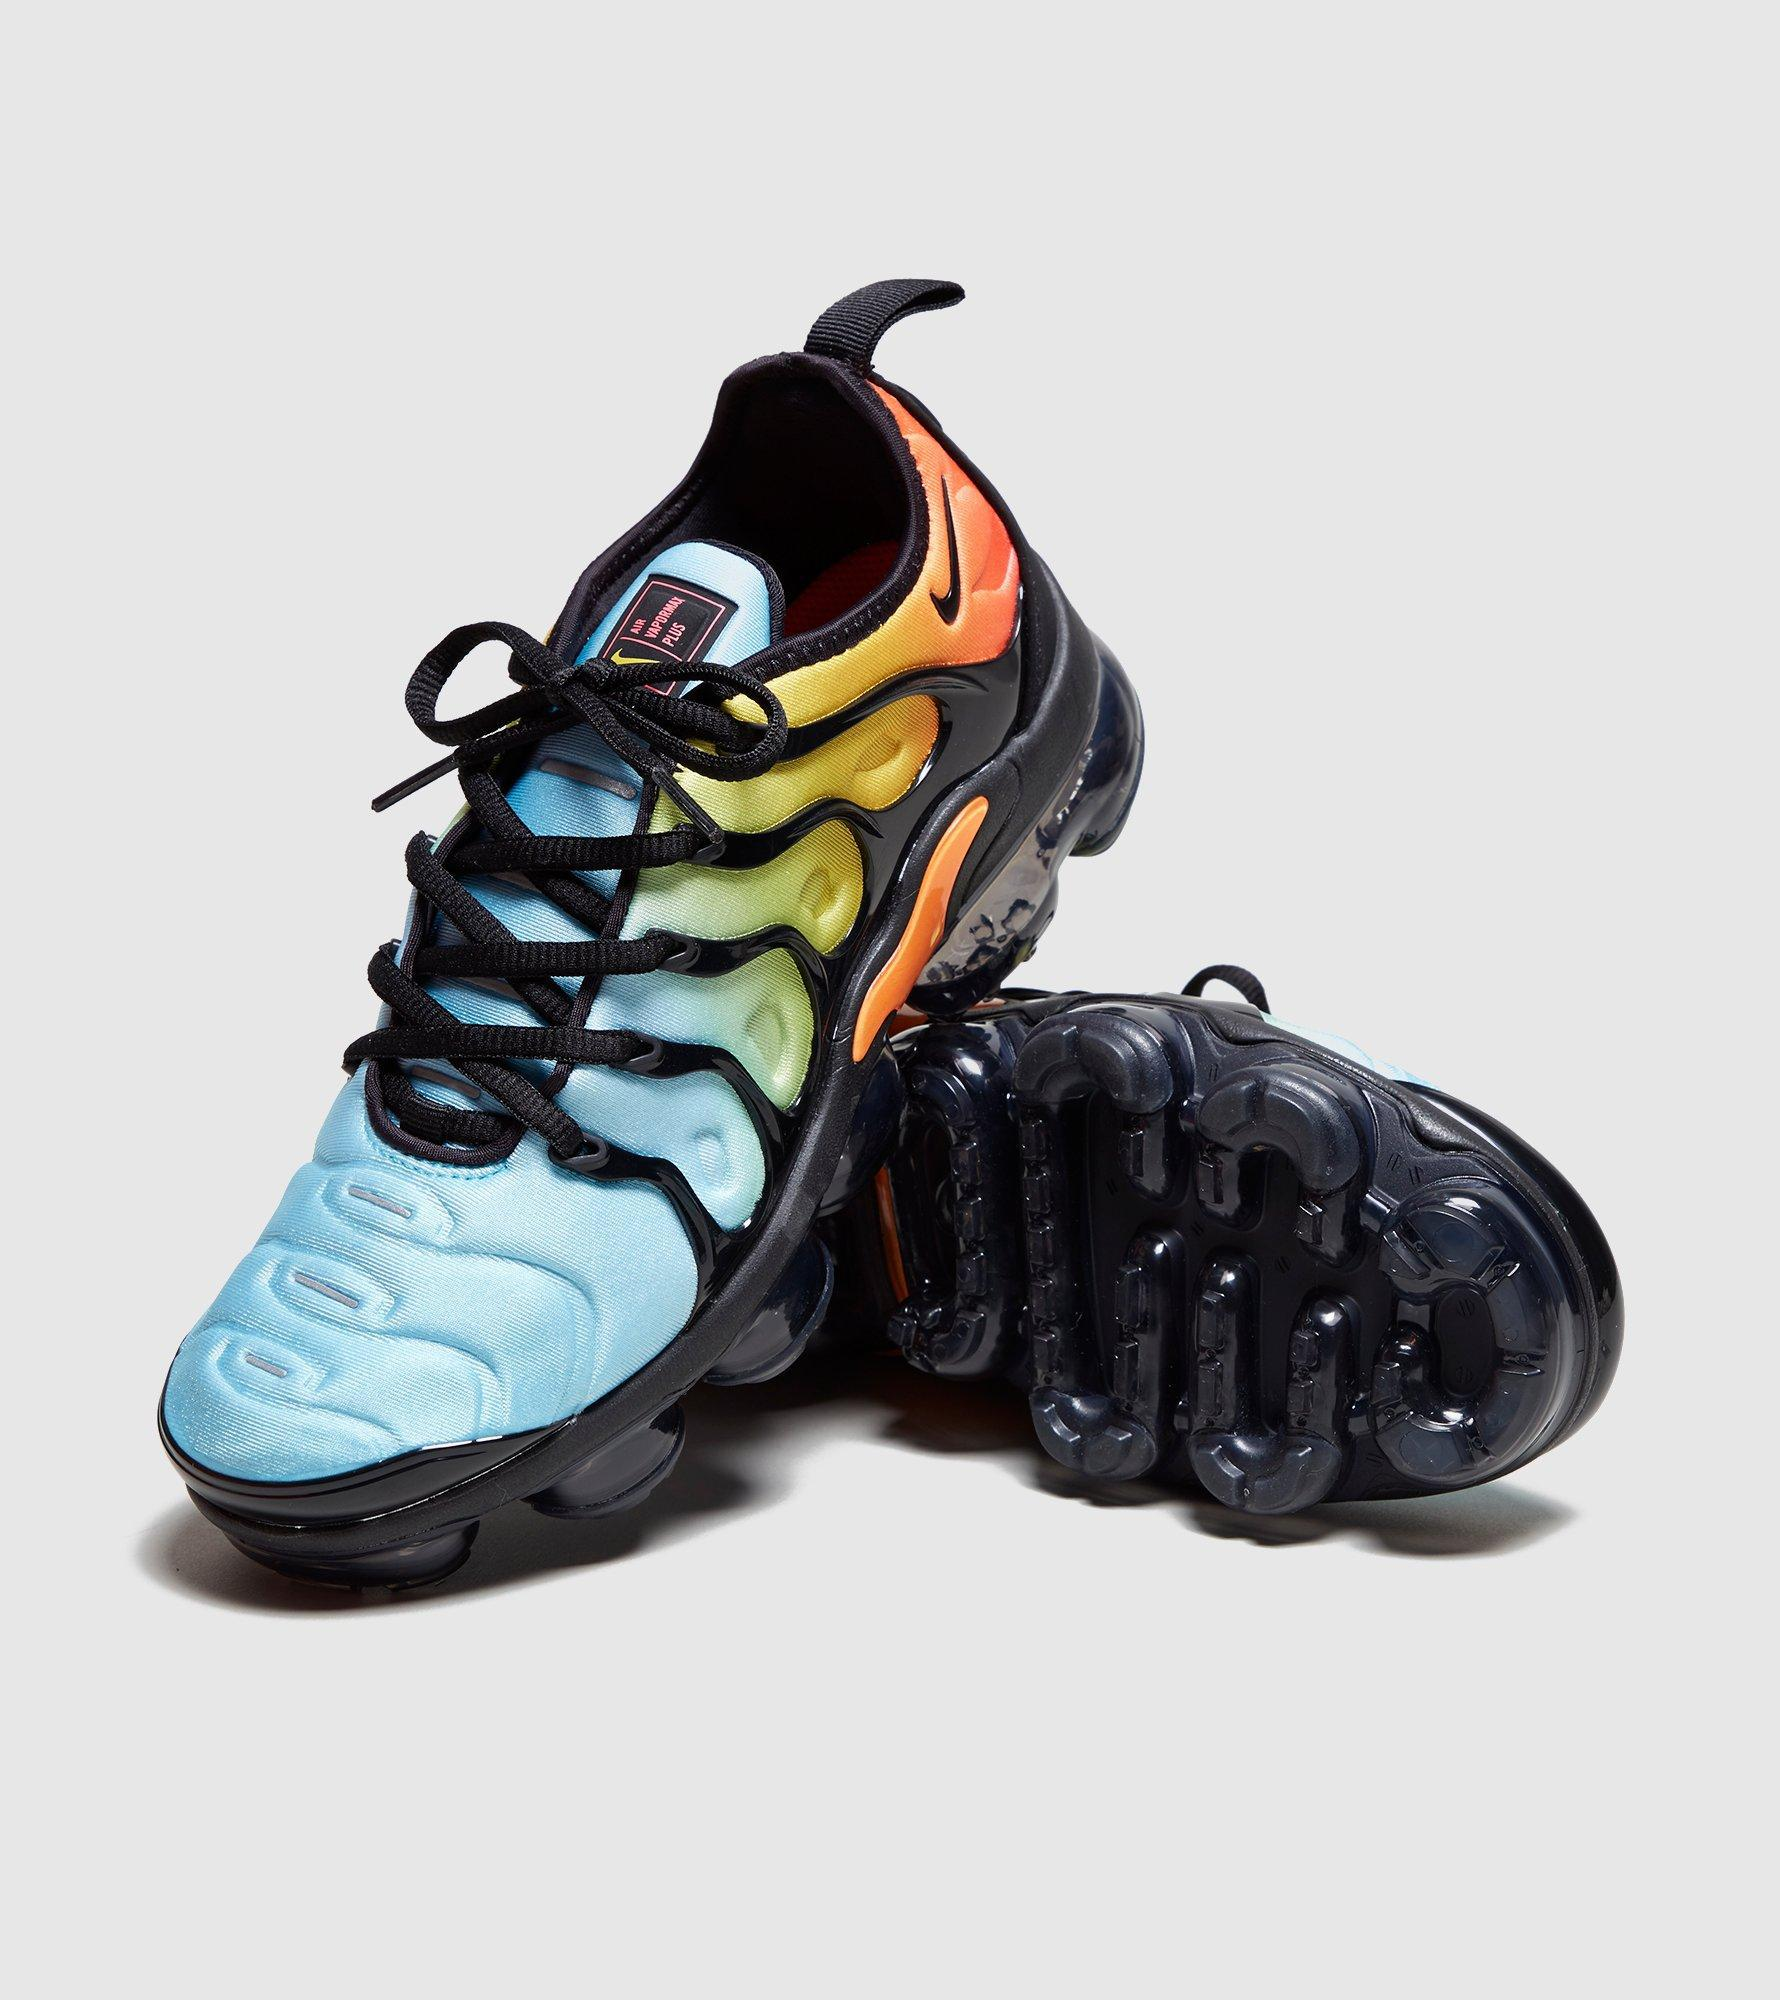 056fdfa0272a2 Lyst - Nike Air Vapormax Plus Women s